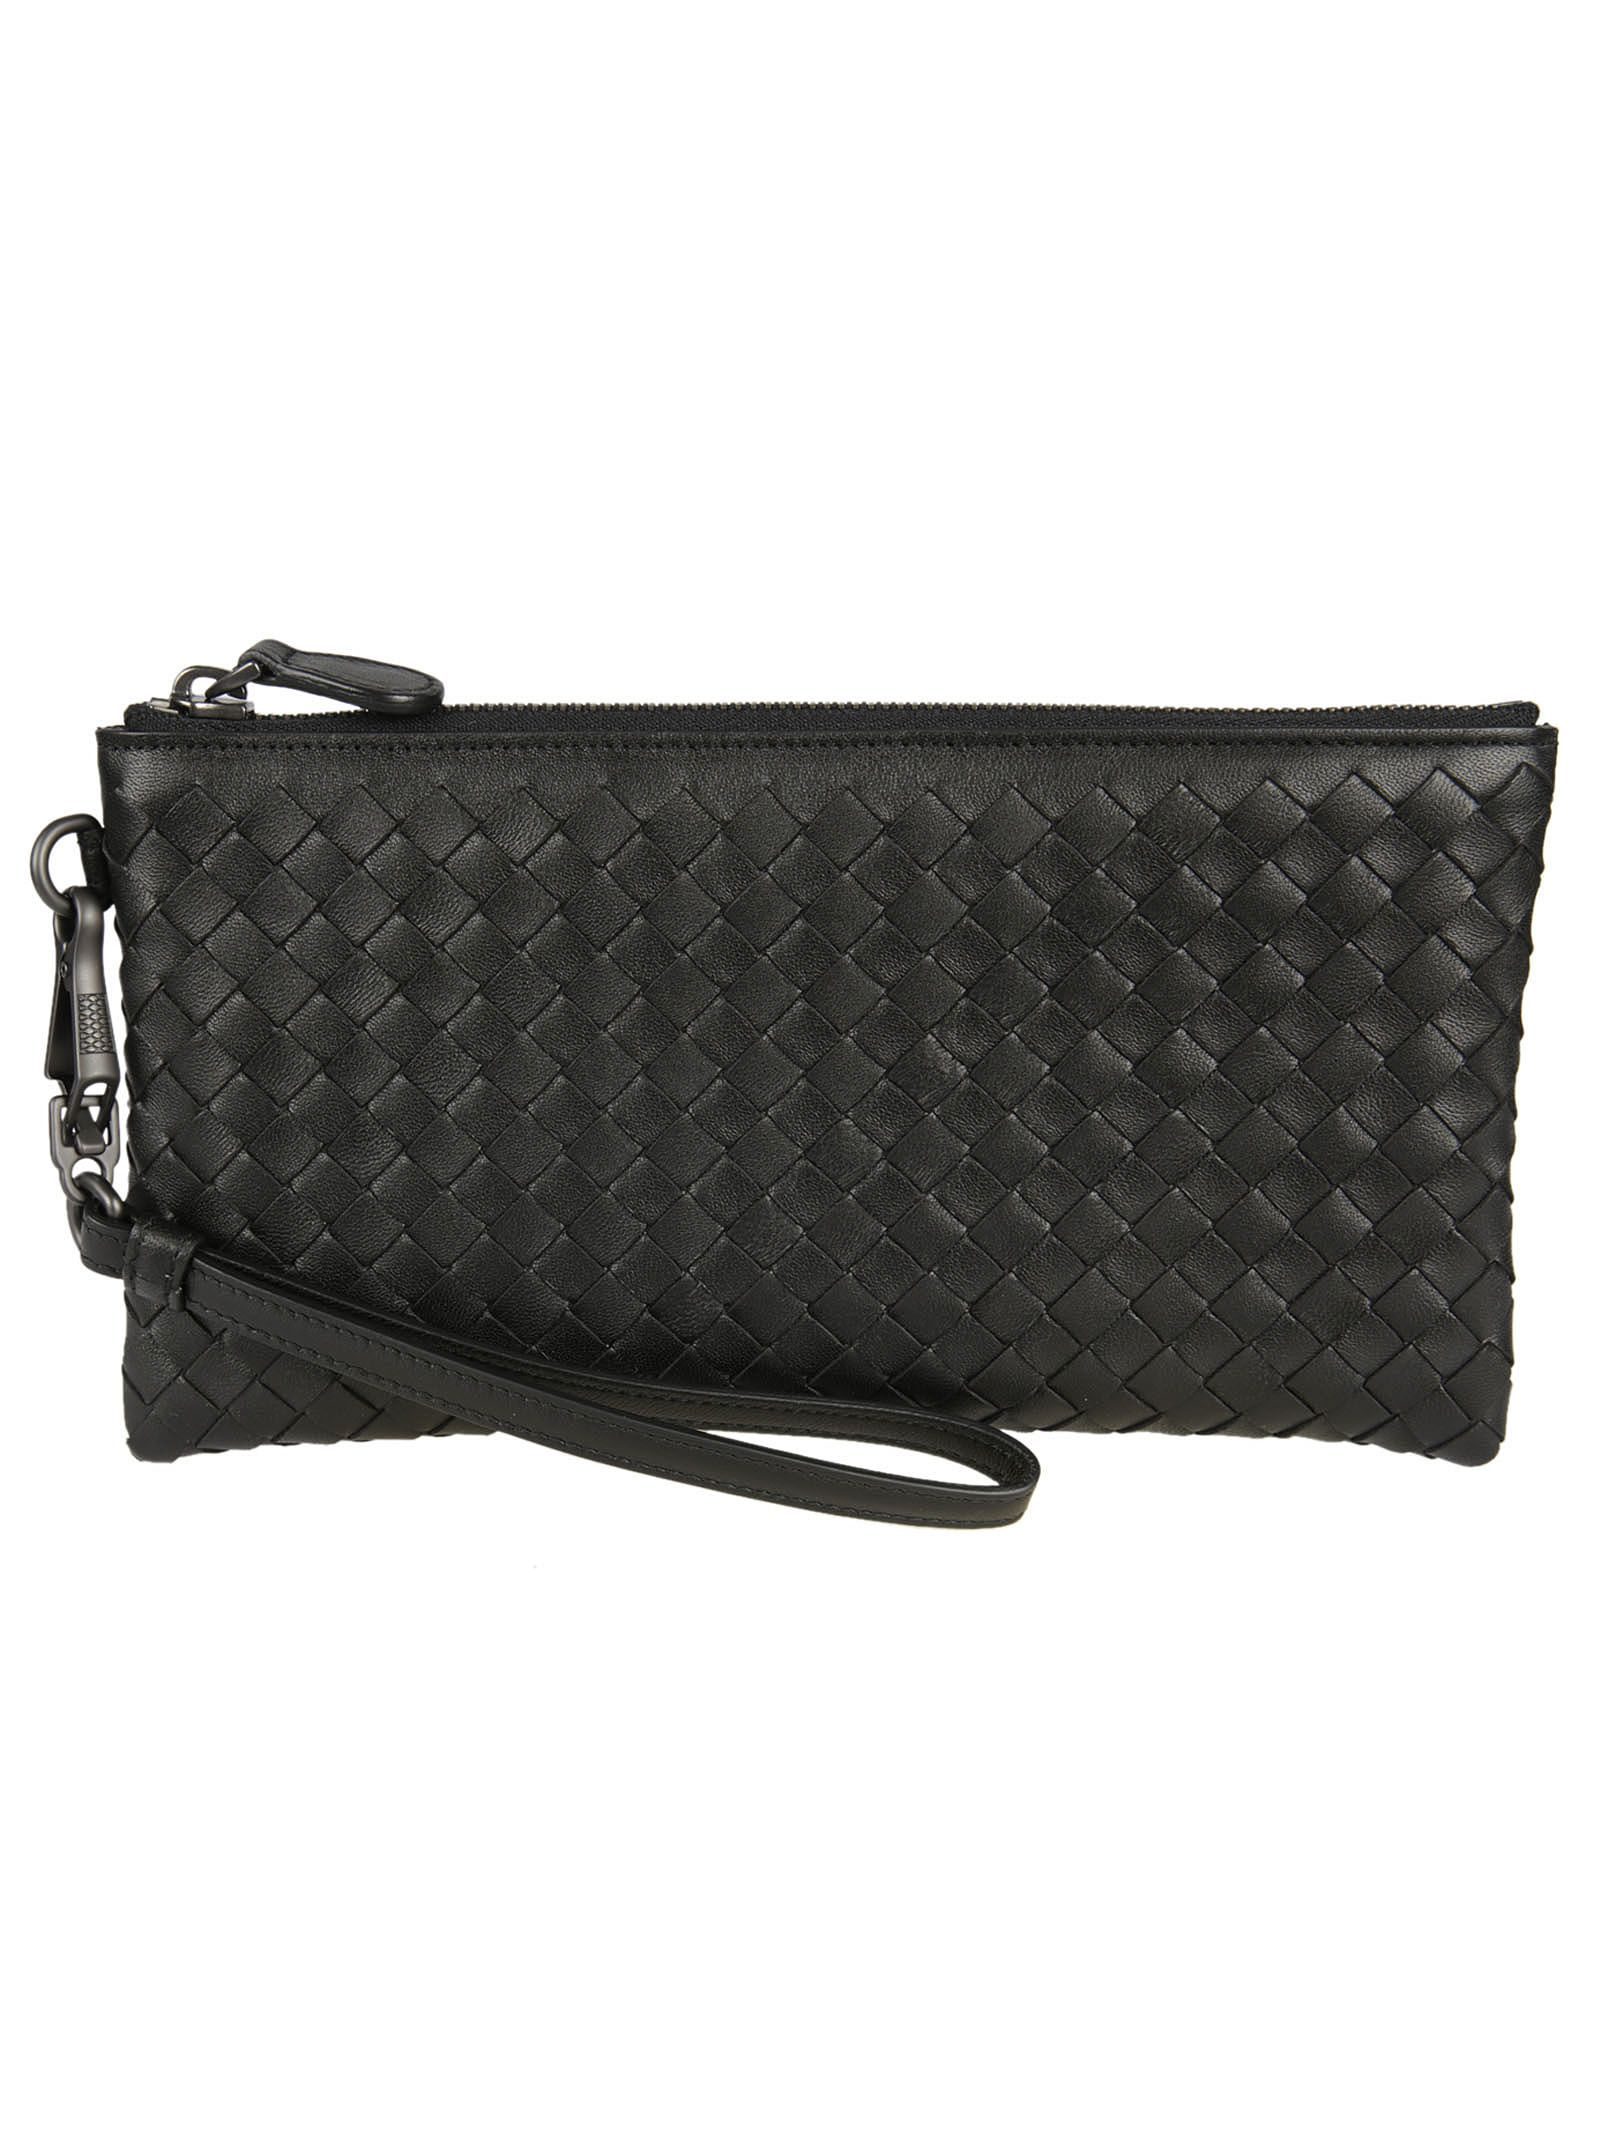 Bottega Veneta Zipped Clutch